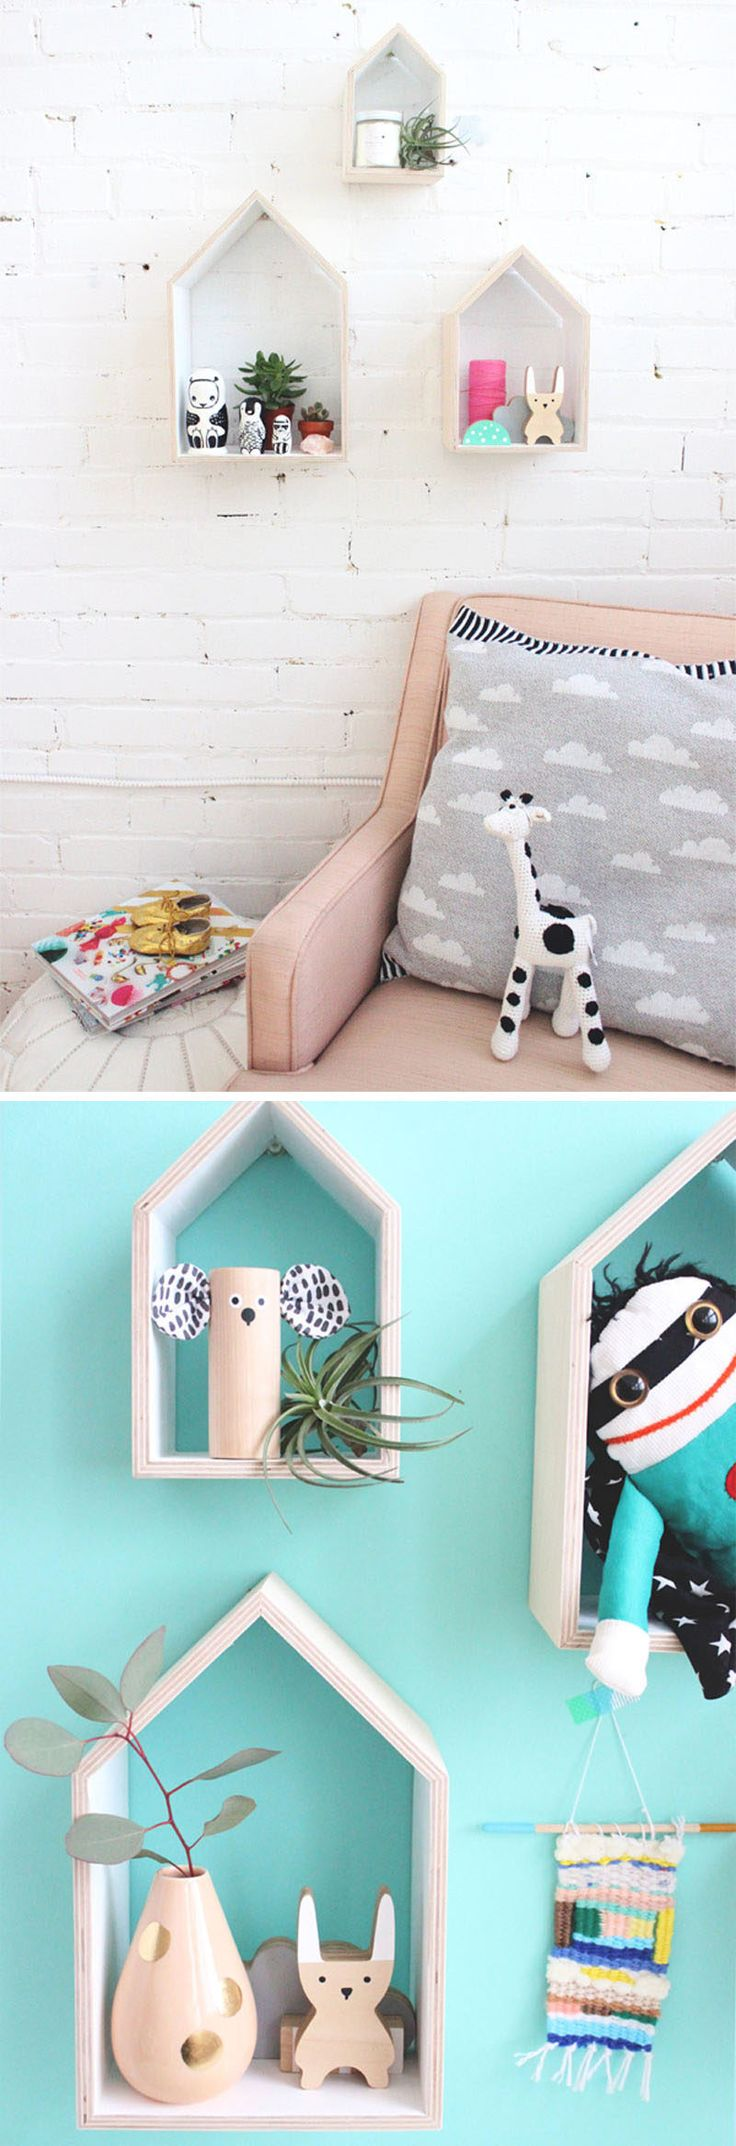 House-shaped wall shelves are a cute bedroom decorating idea for little girls or tweens.